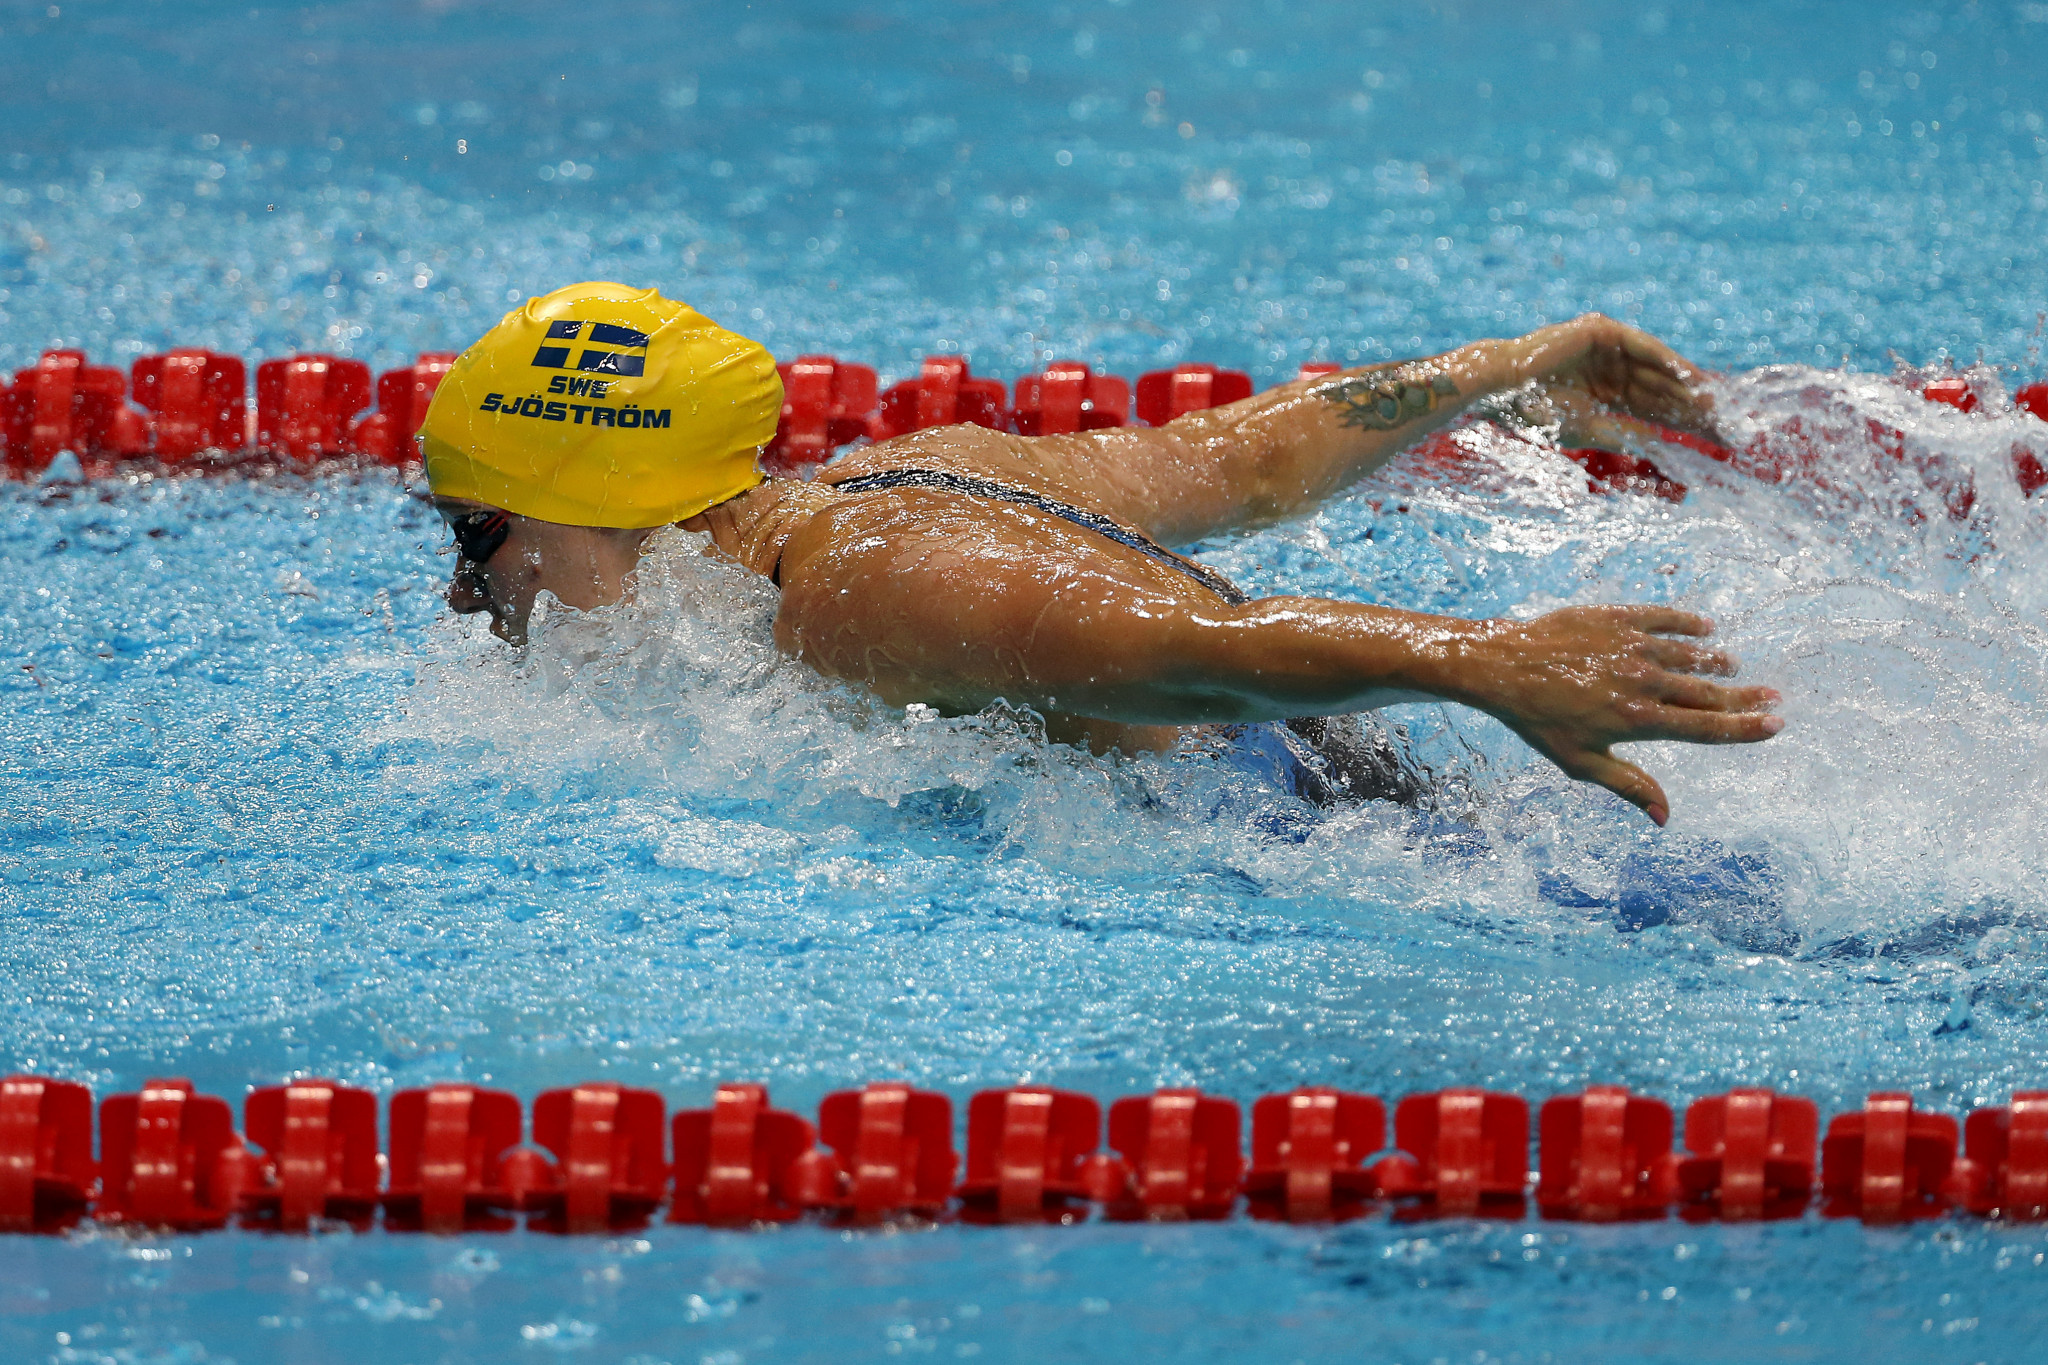 Sweden's Sarah Sjostrom finished the FINA Champions Swim Series in Guangzhou with four gold medals ©Getty Images